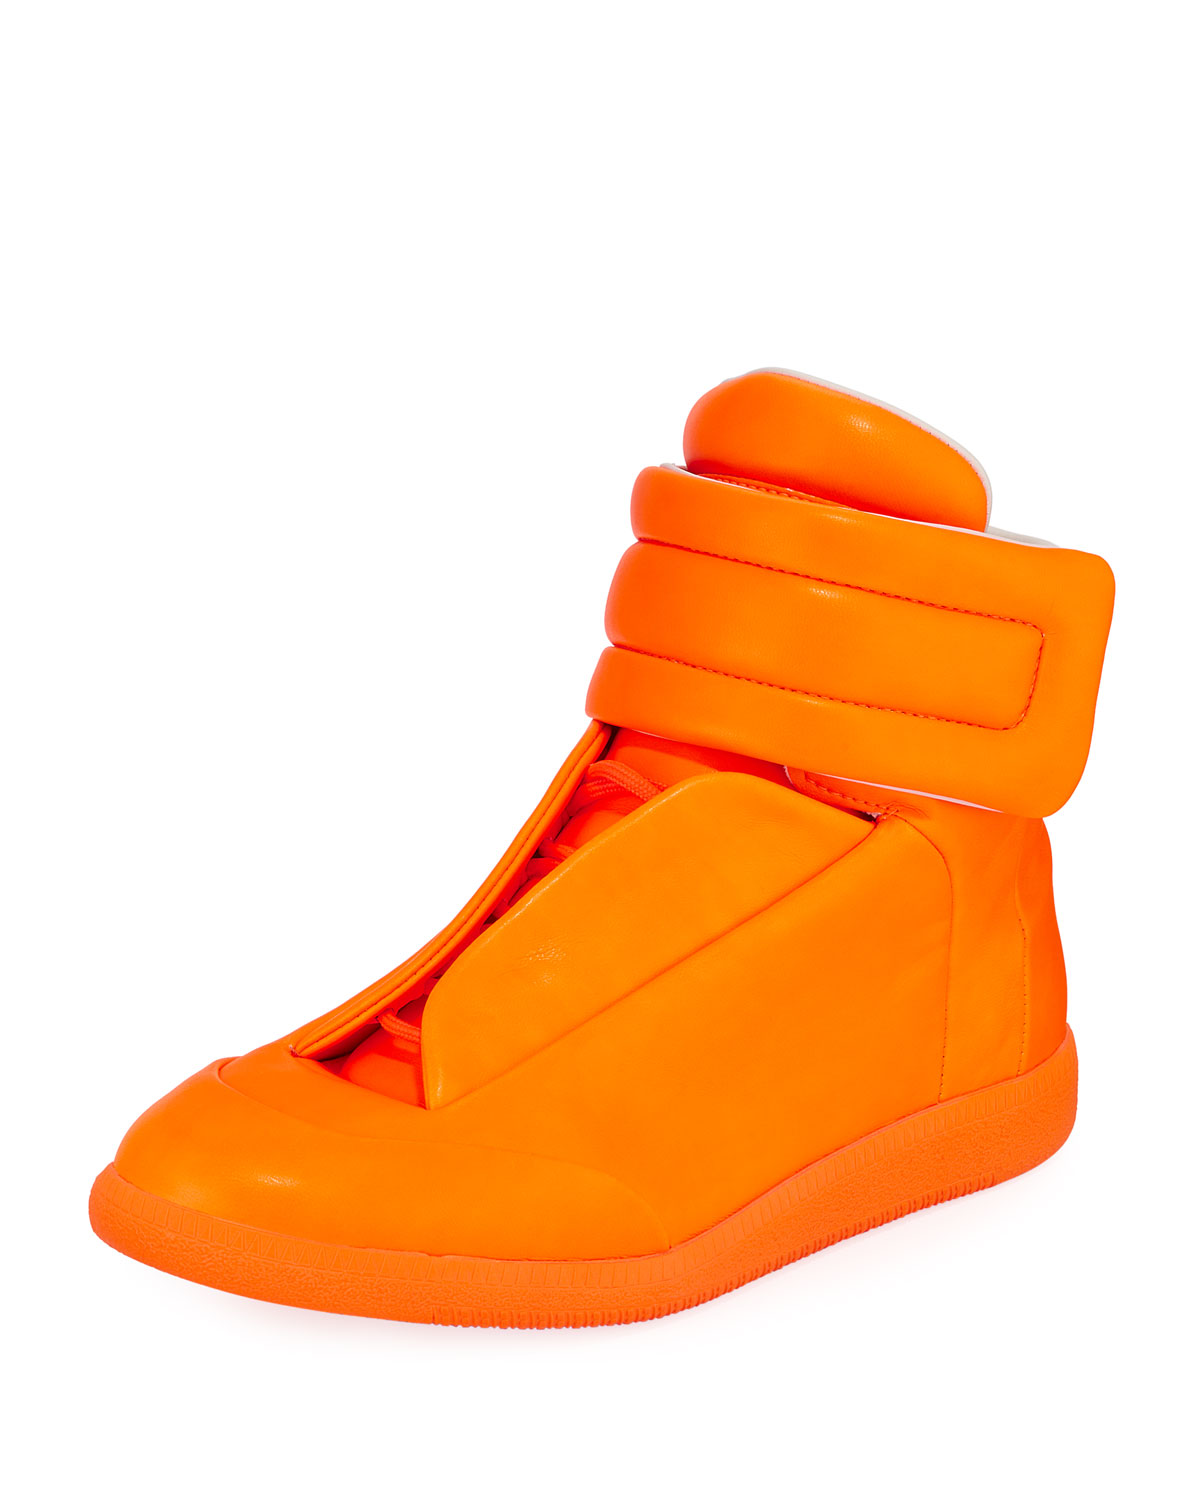 5f2639094bd26 Maison Margiela Future Neon Leather High-Top Sneakers